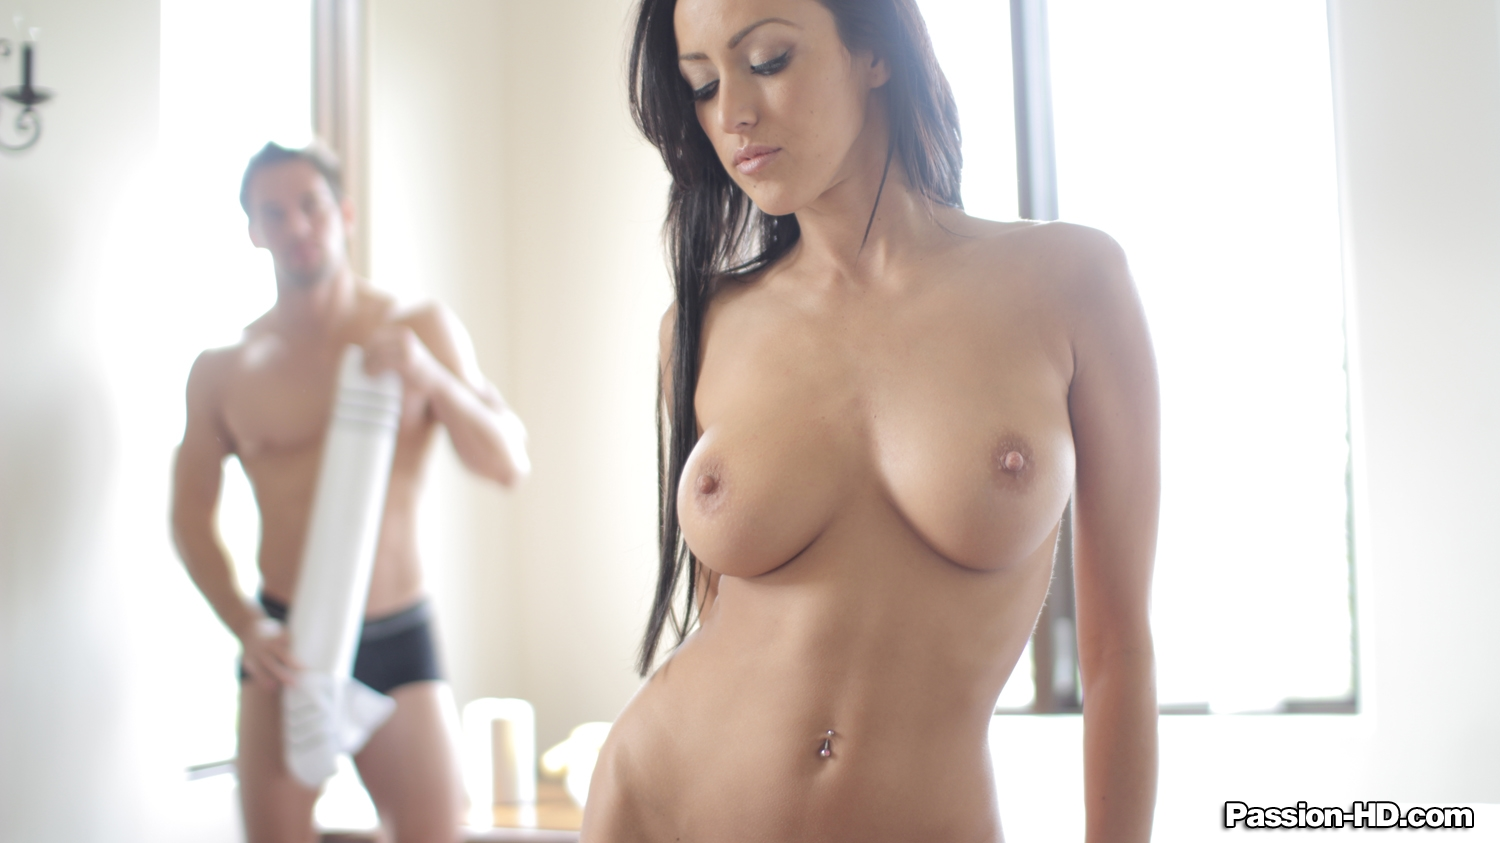 Passion Hd Reverse Cowgirl